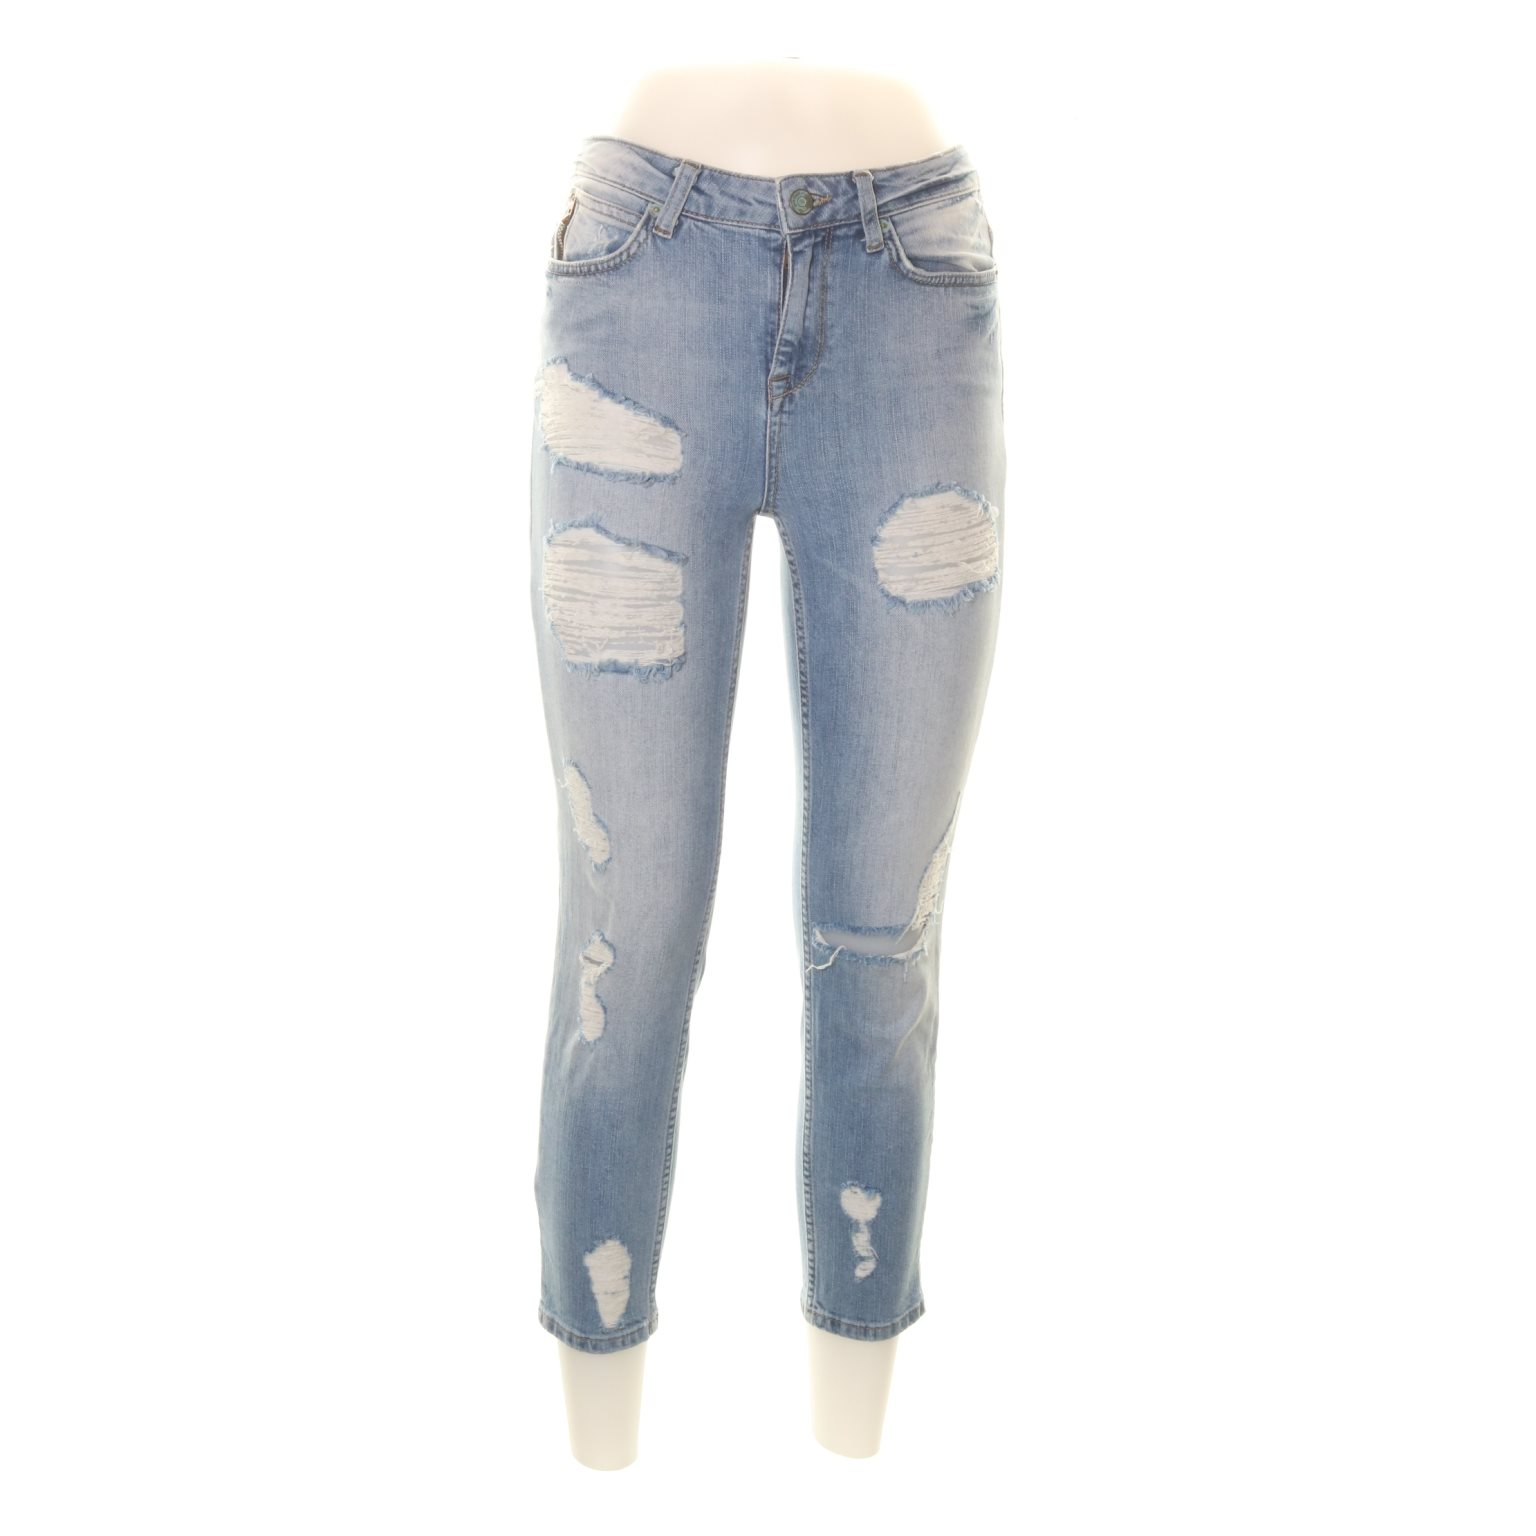 Perfect Jeans Gina Tricot 1459e3d1687a3